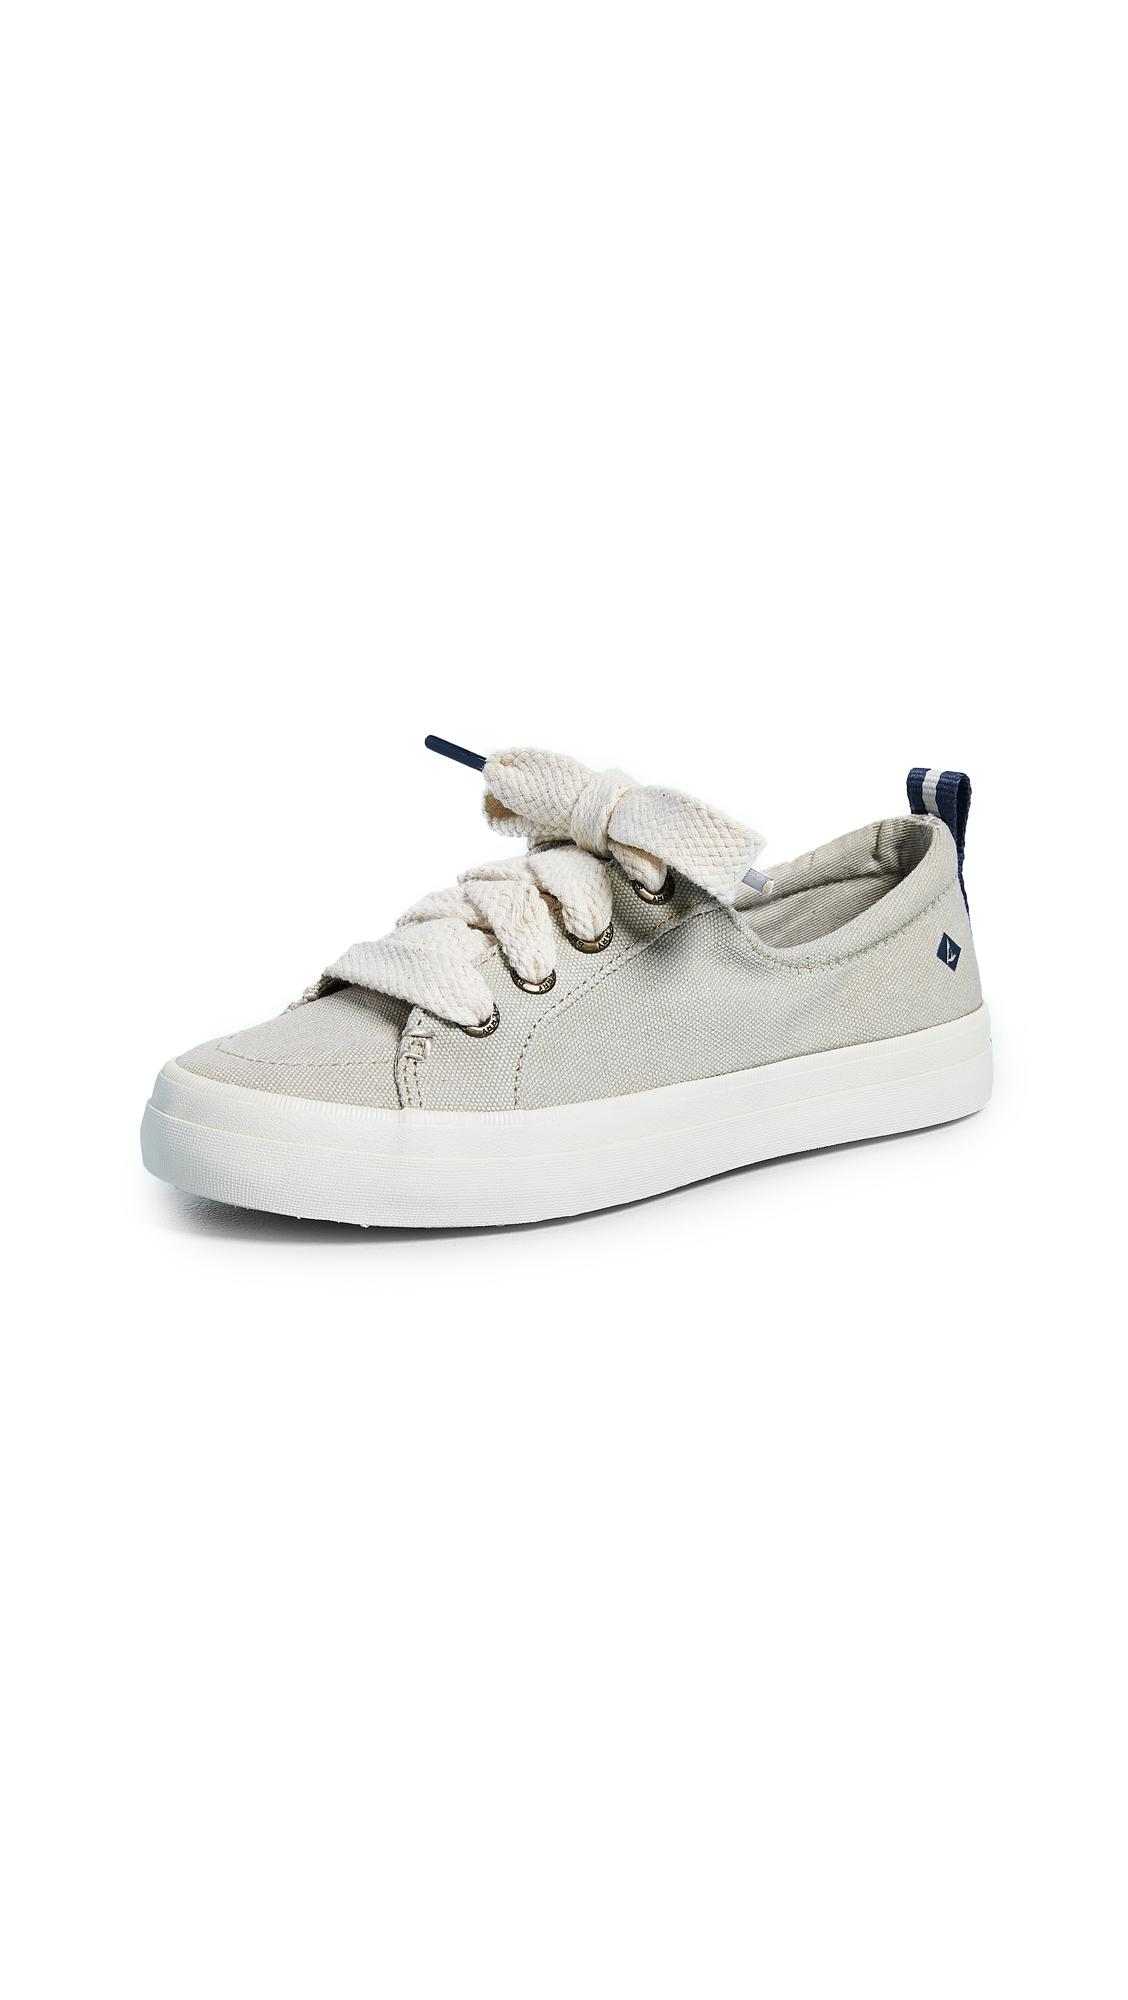 Sperry Top-Sider Crest Vibe Chubby Lace Sneakers in Ivory (White)